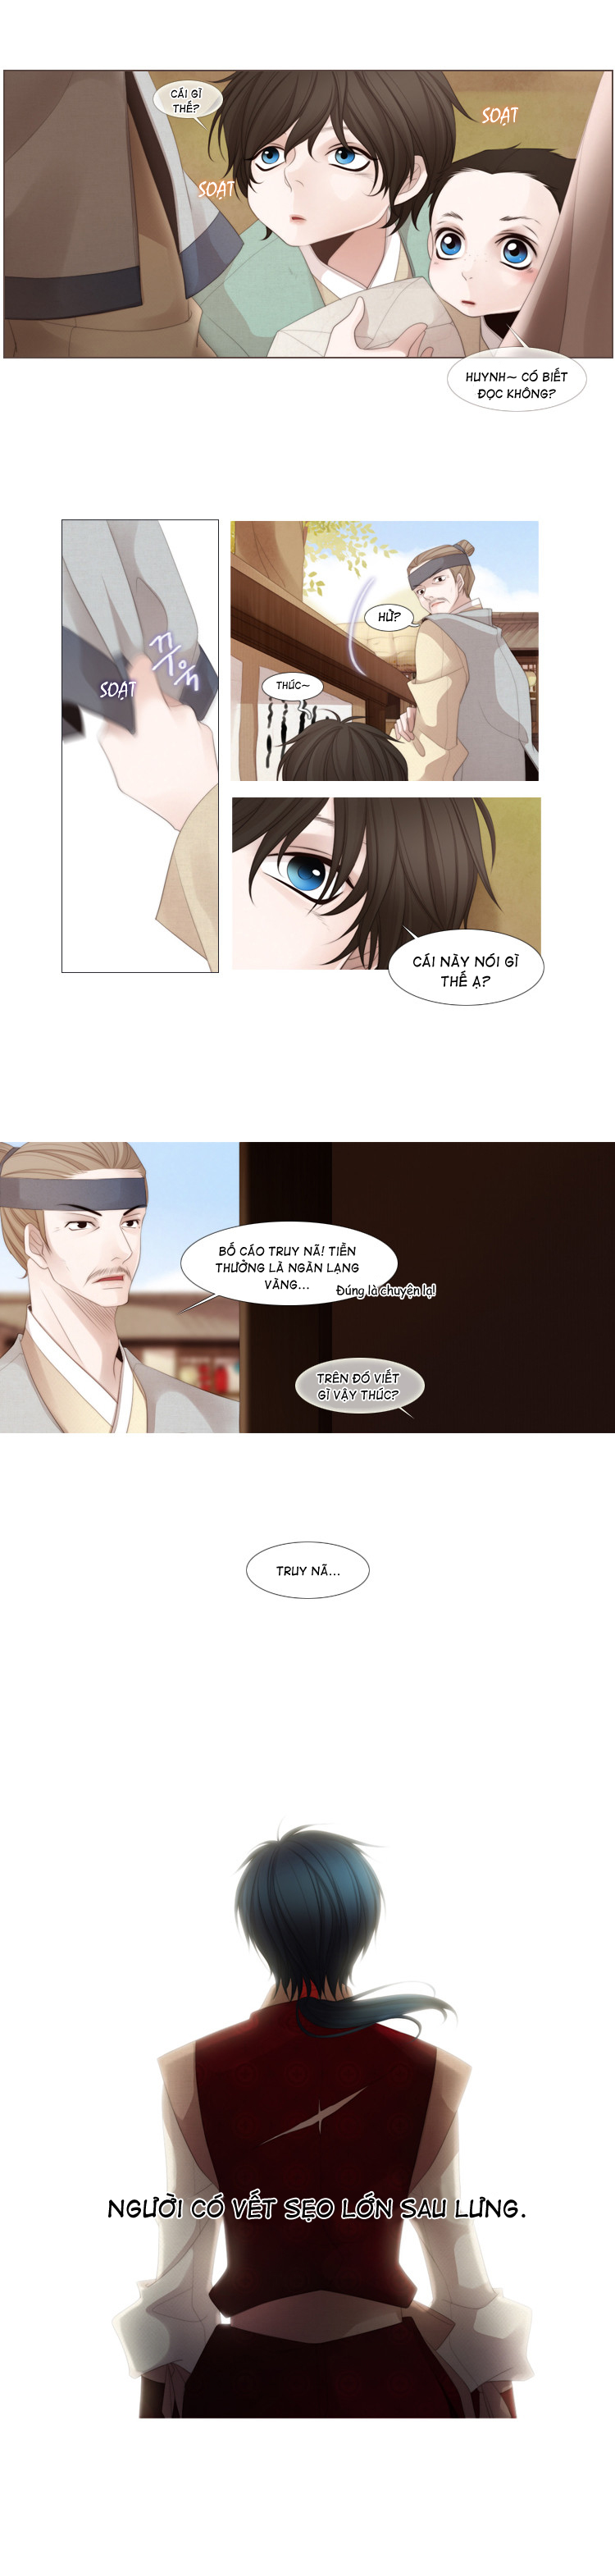 Twelve Nights Chap 31 - Next Chap 32